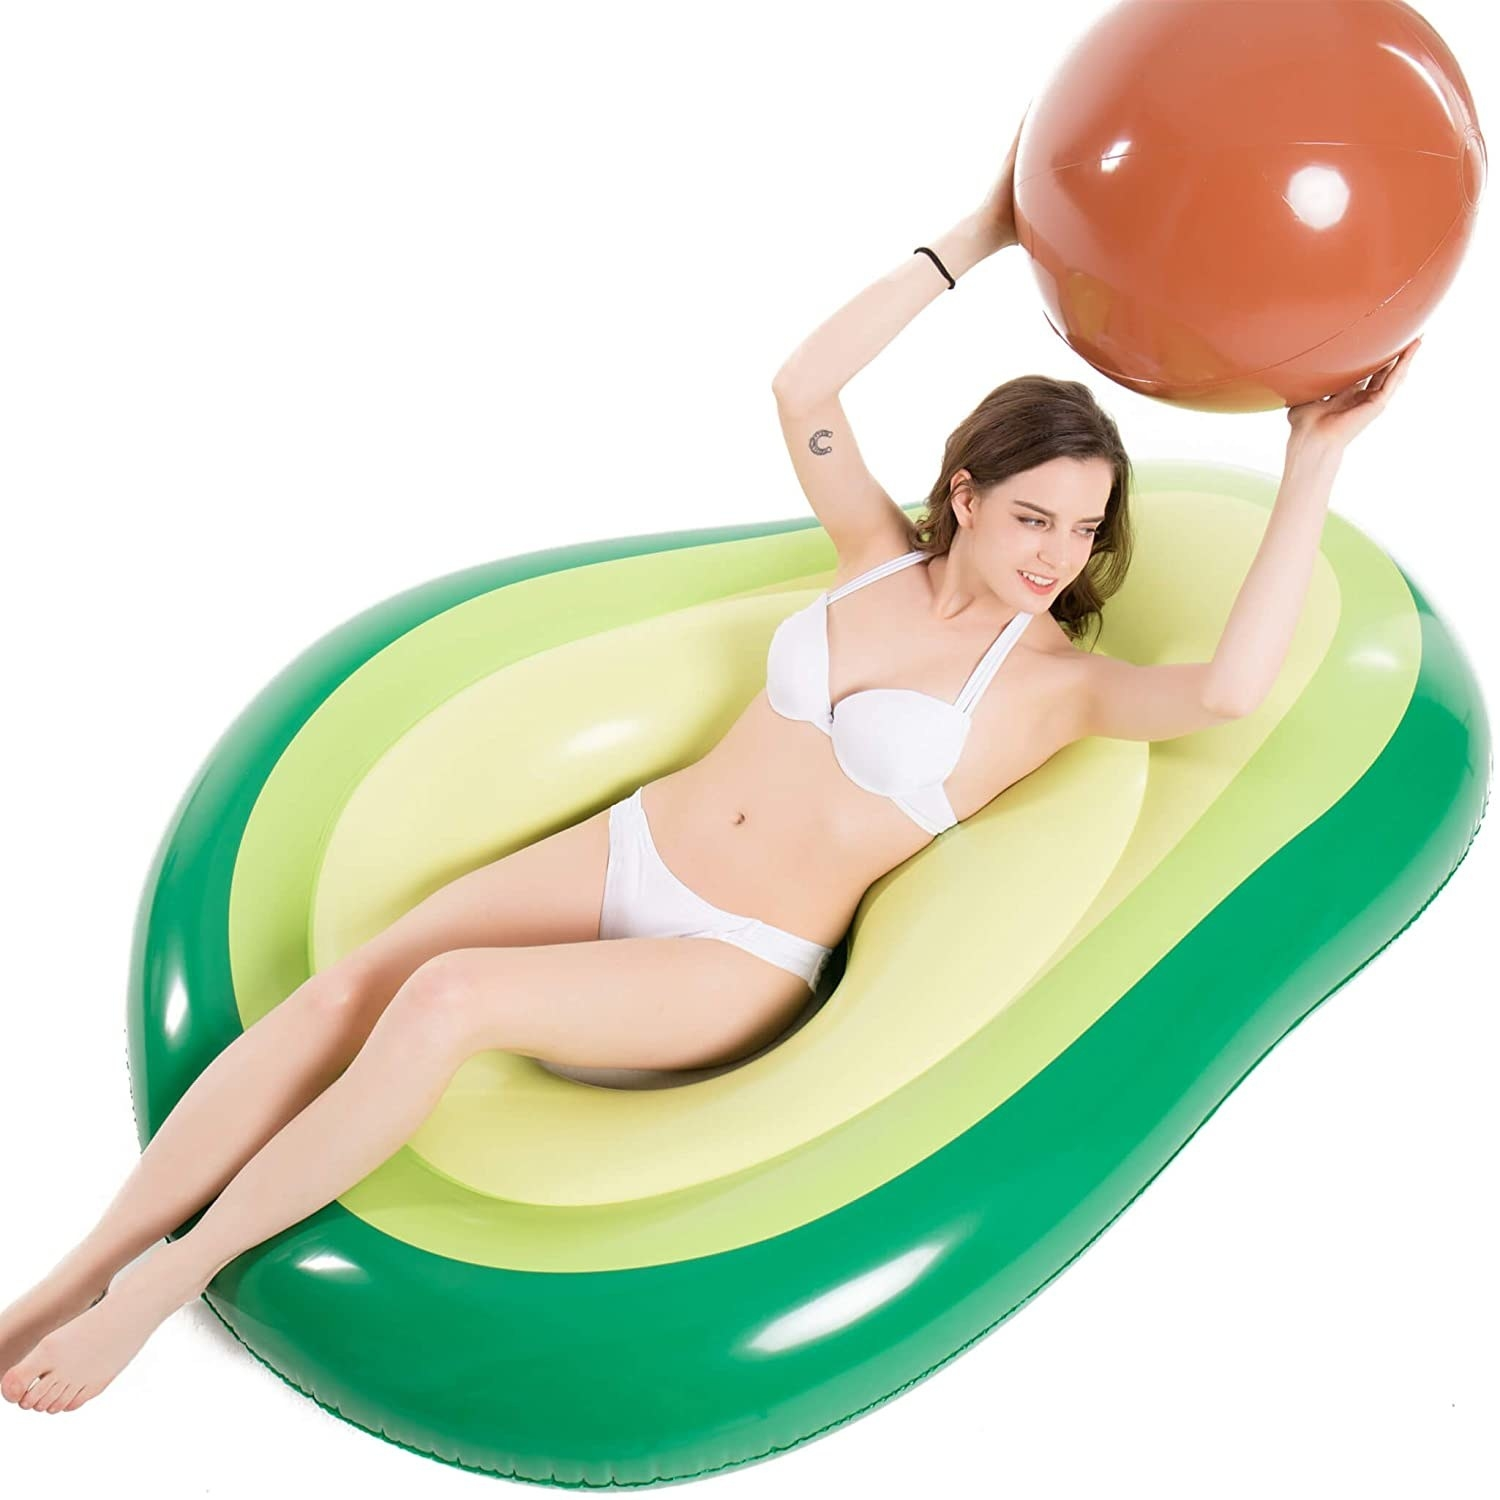 A model sitting in the avocado-shaped float that has a hole in the middle, holding the brown ball